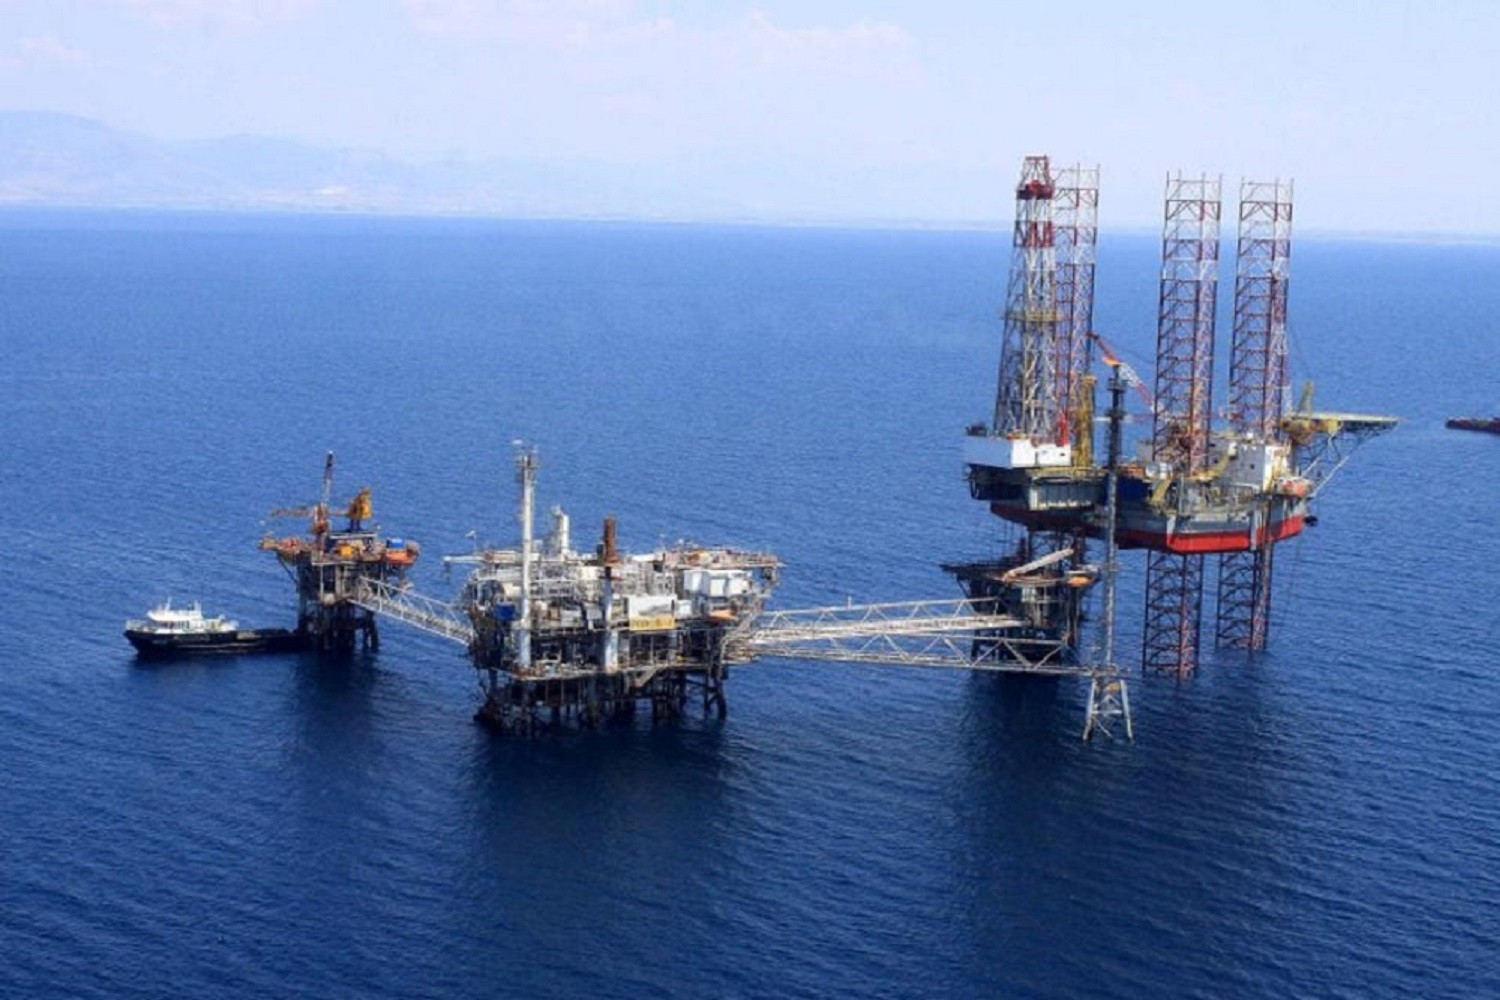 New areas in Crete made available for hydrocarbon explorations